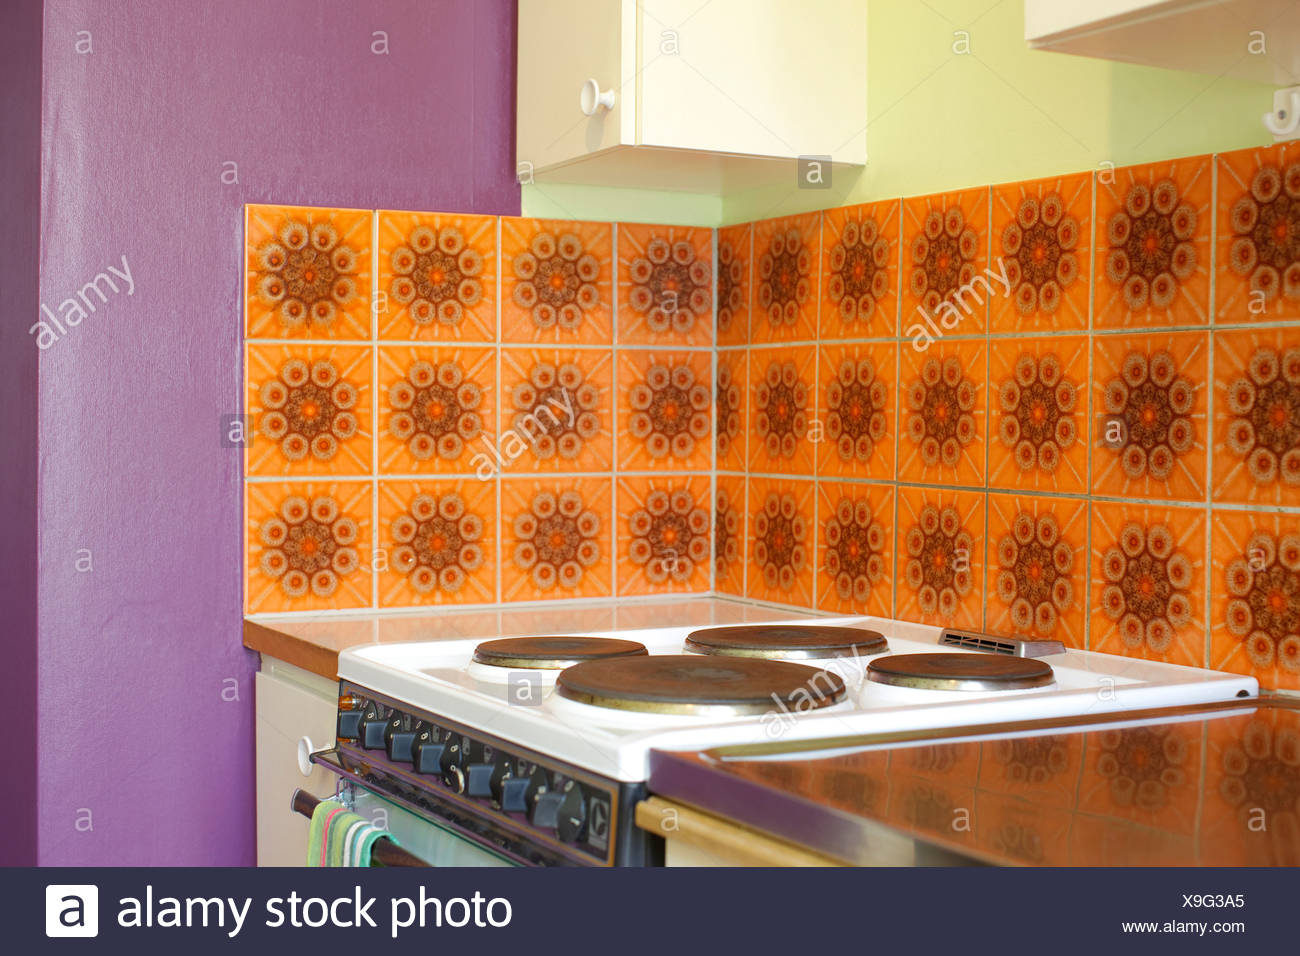 View of stove against tiled and purple walls in the kitchen - Stock Image